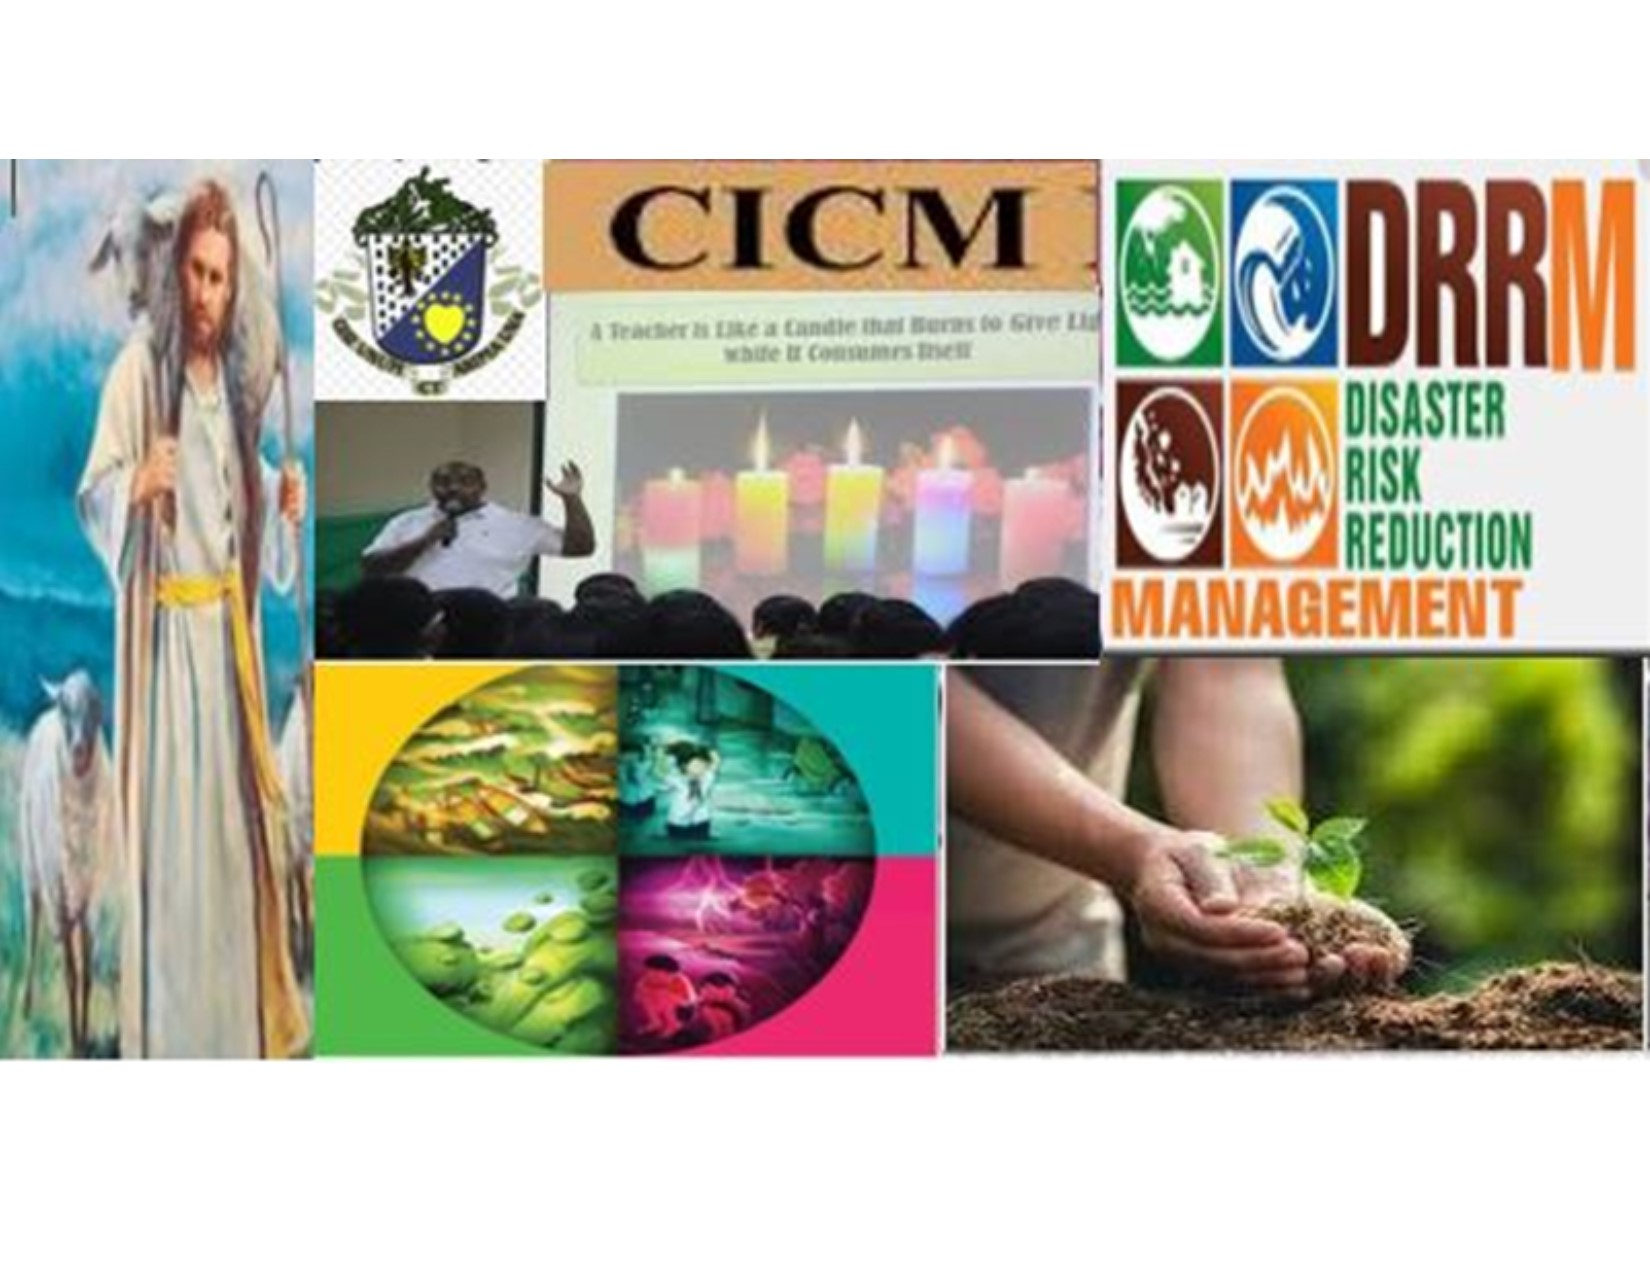 CICM in Action: Environmental Protection Management (Disaster Risk Reduction Management)